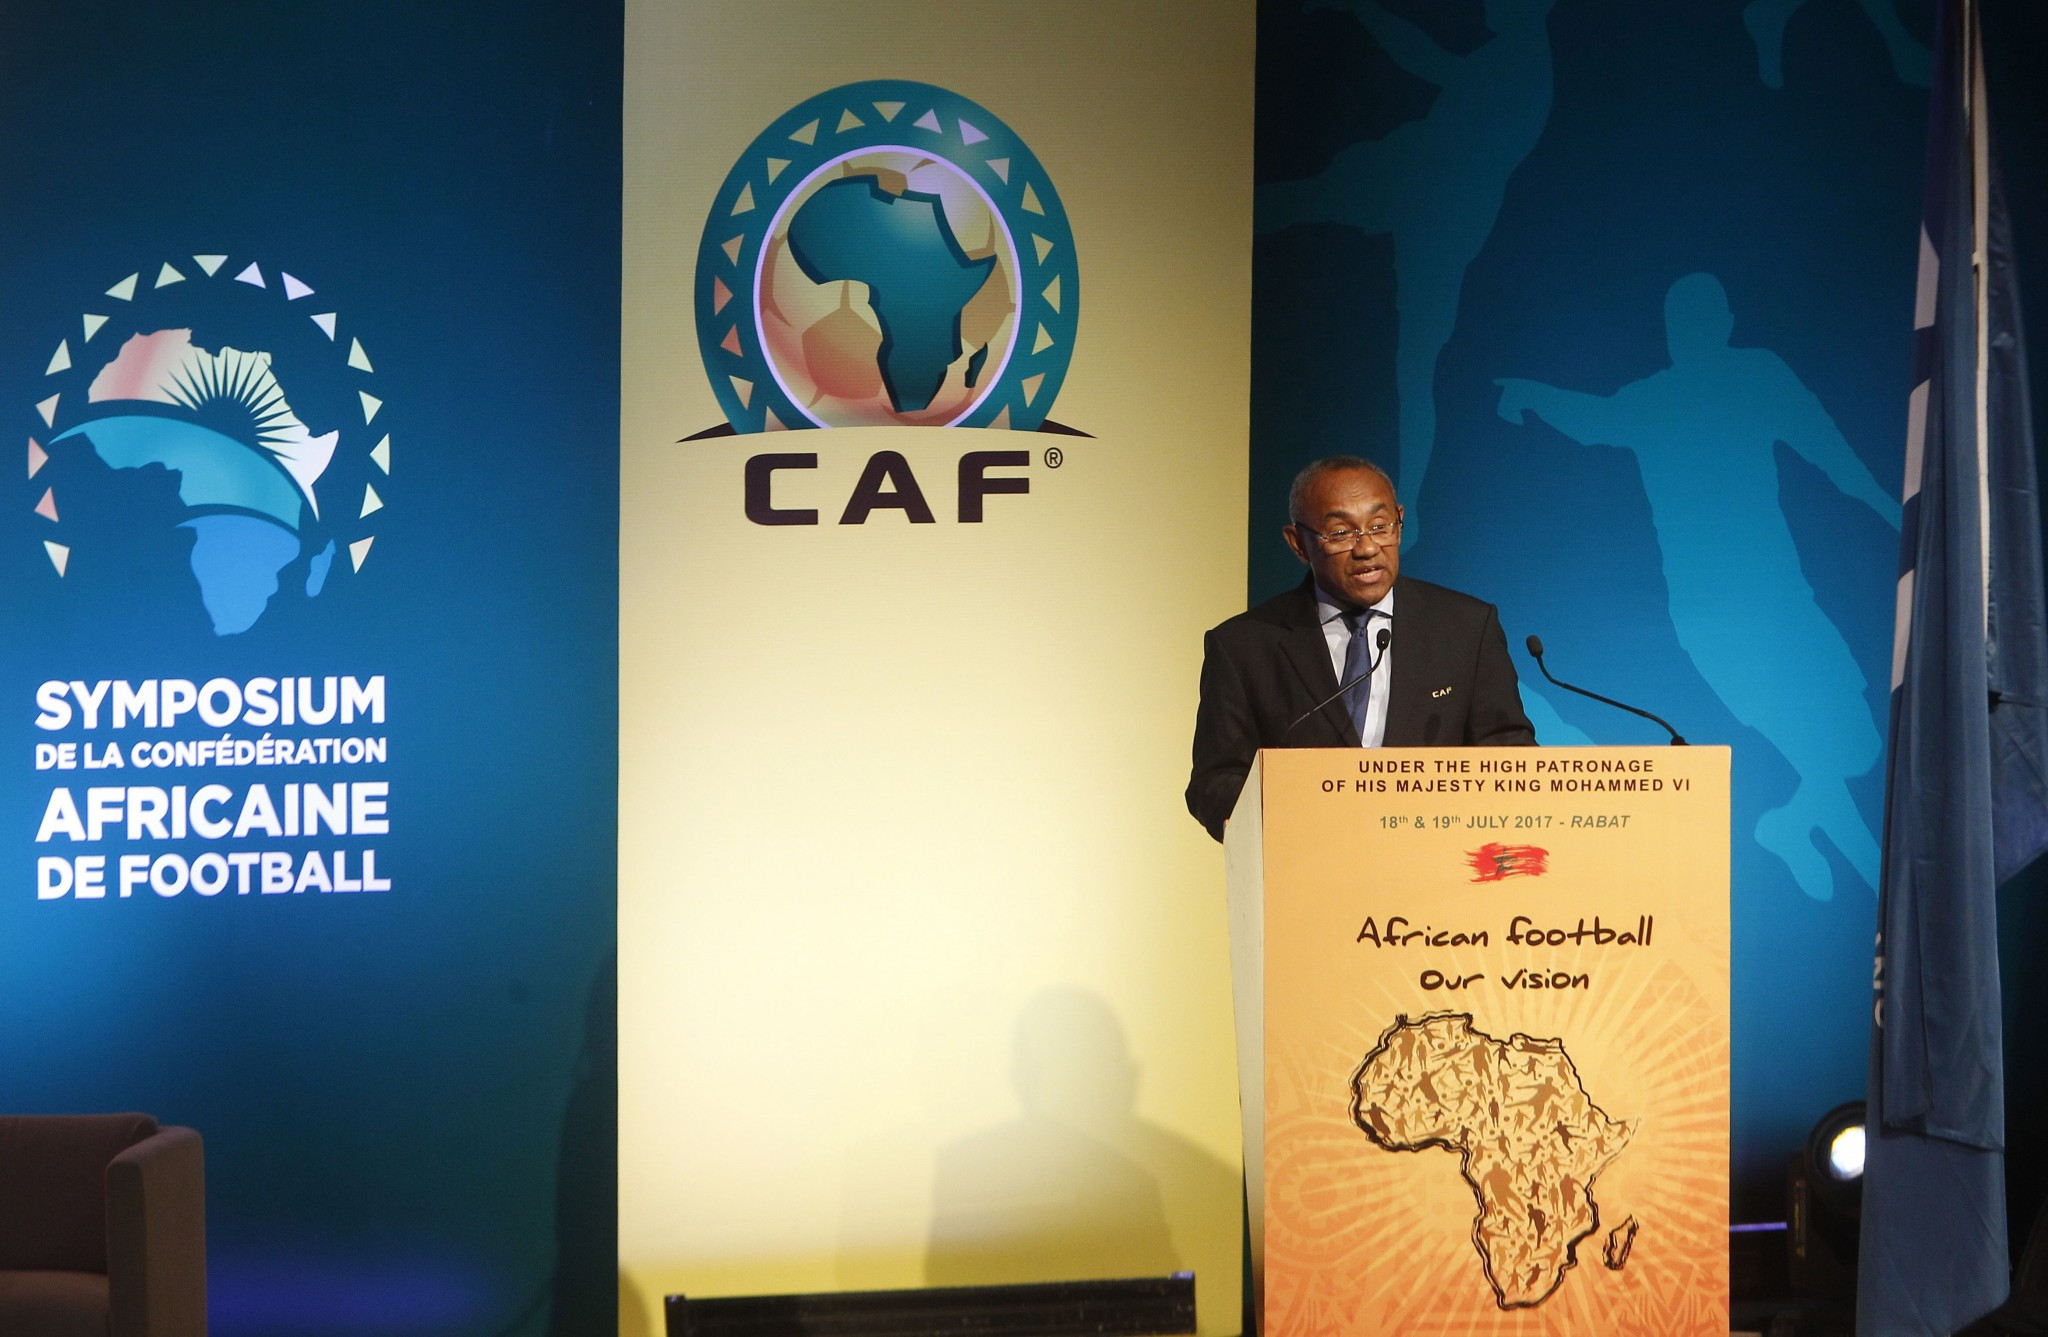 caf africa cup of nations football Welcome to caf tv, the official channel dedicated to african football fans, and  enjoy the best  qualifying matches for the africa cup of nations, gabon 2017.